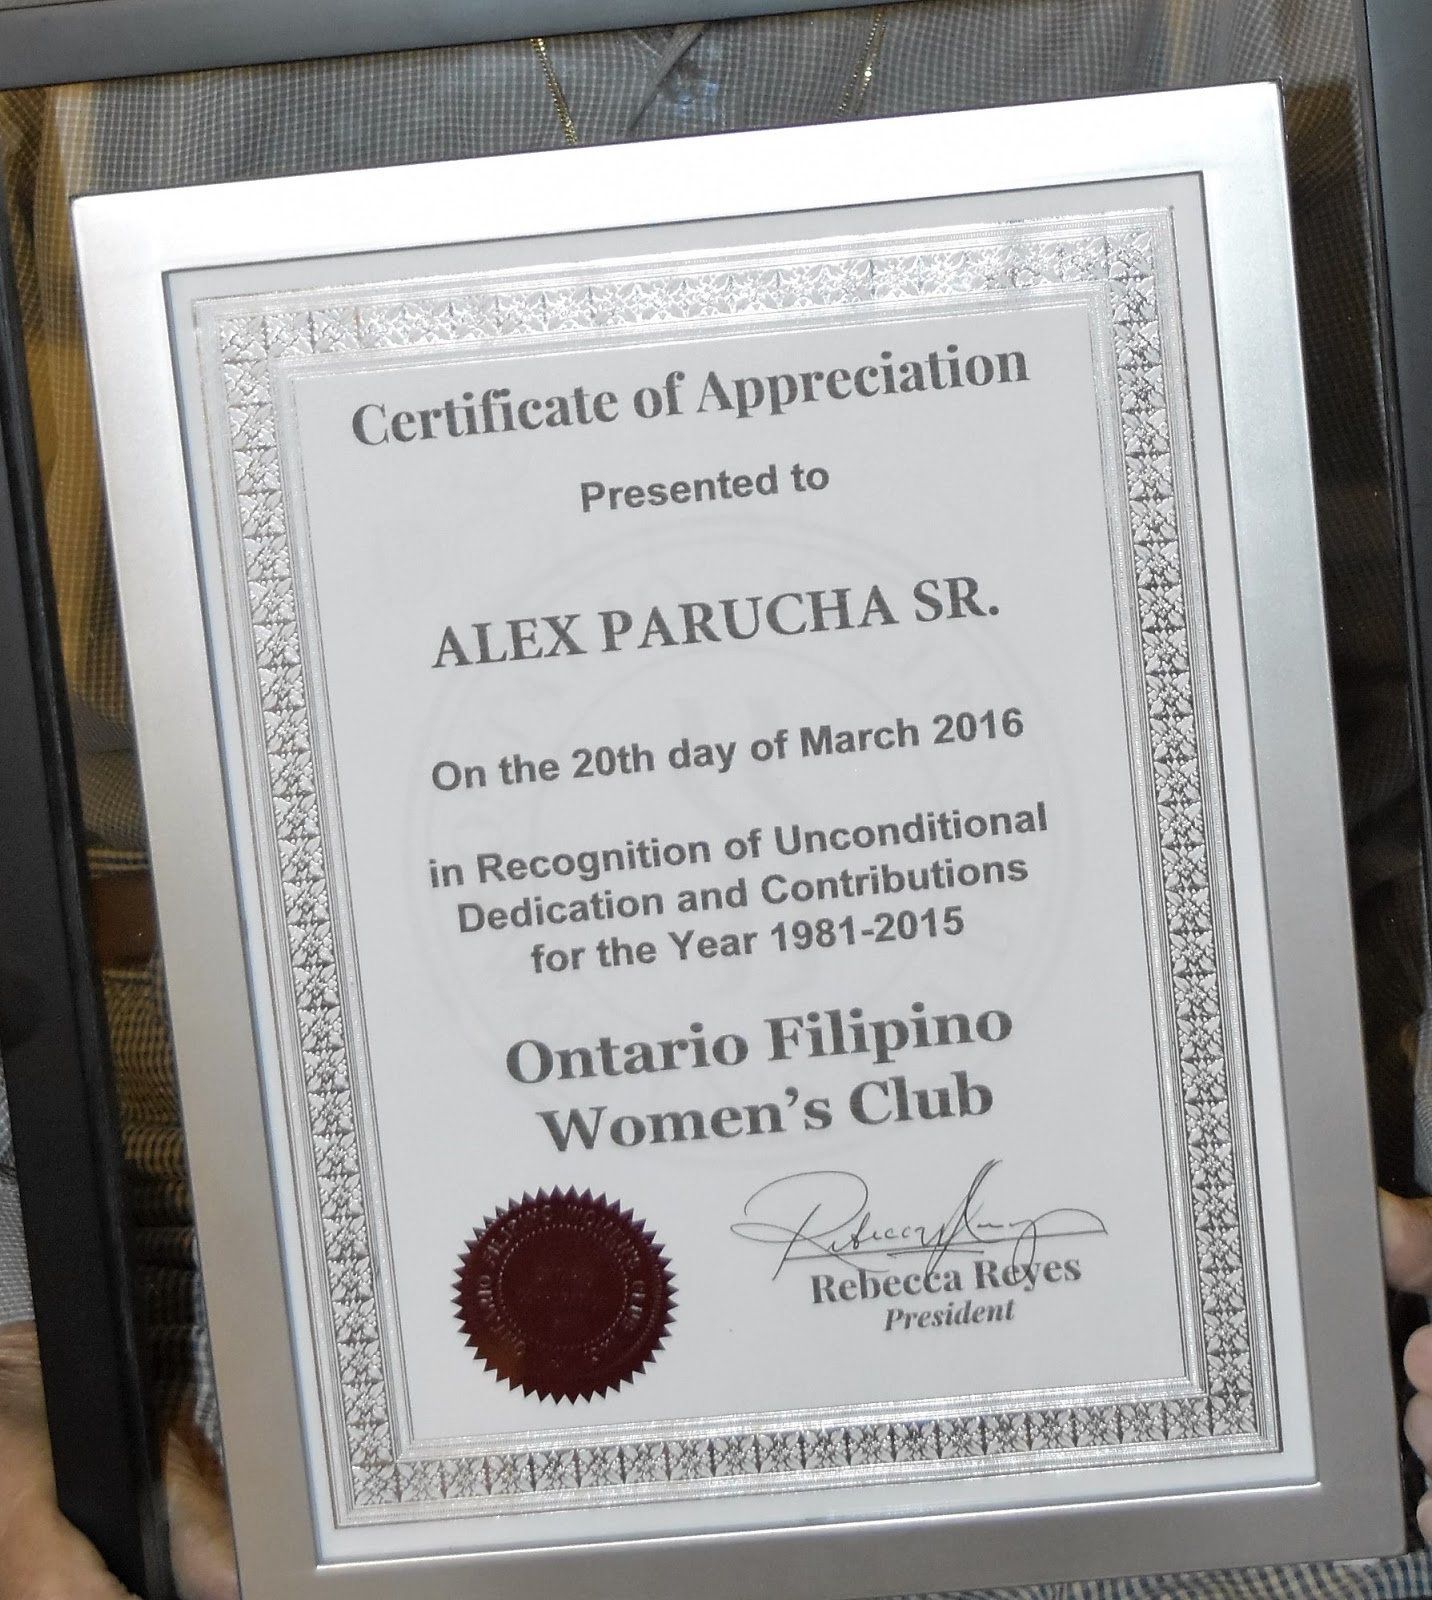 Ontario filipino womens club starting the year 2016 in certificate signed on 20 march 2016 by rebecca reyes ofwc president yadclub Gallery